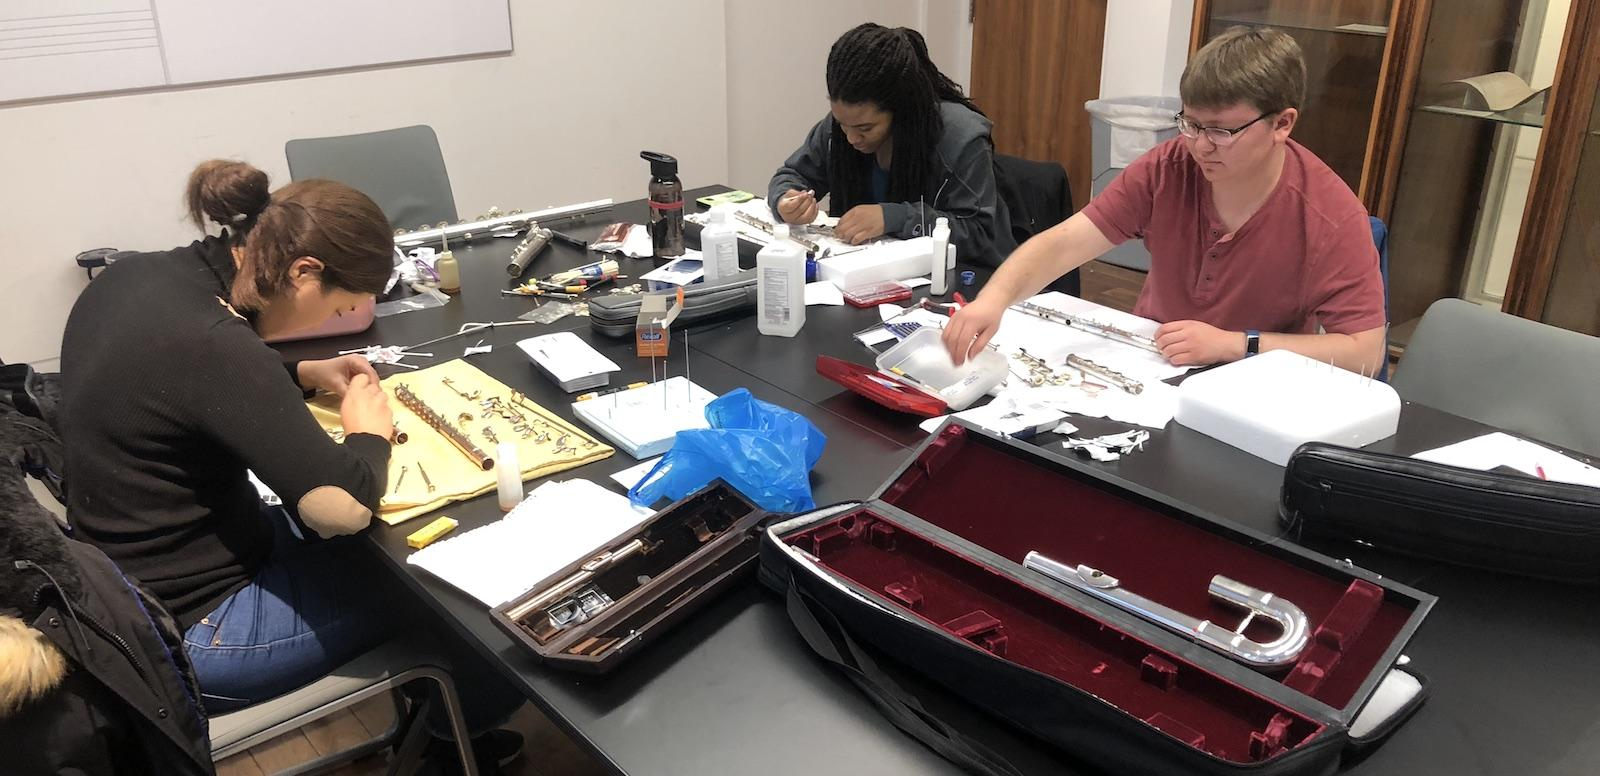 three students sitting at a table taking apart flutes and cleaning them